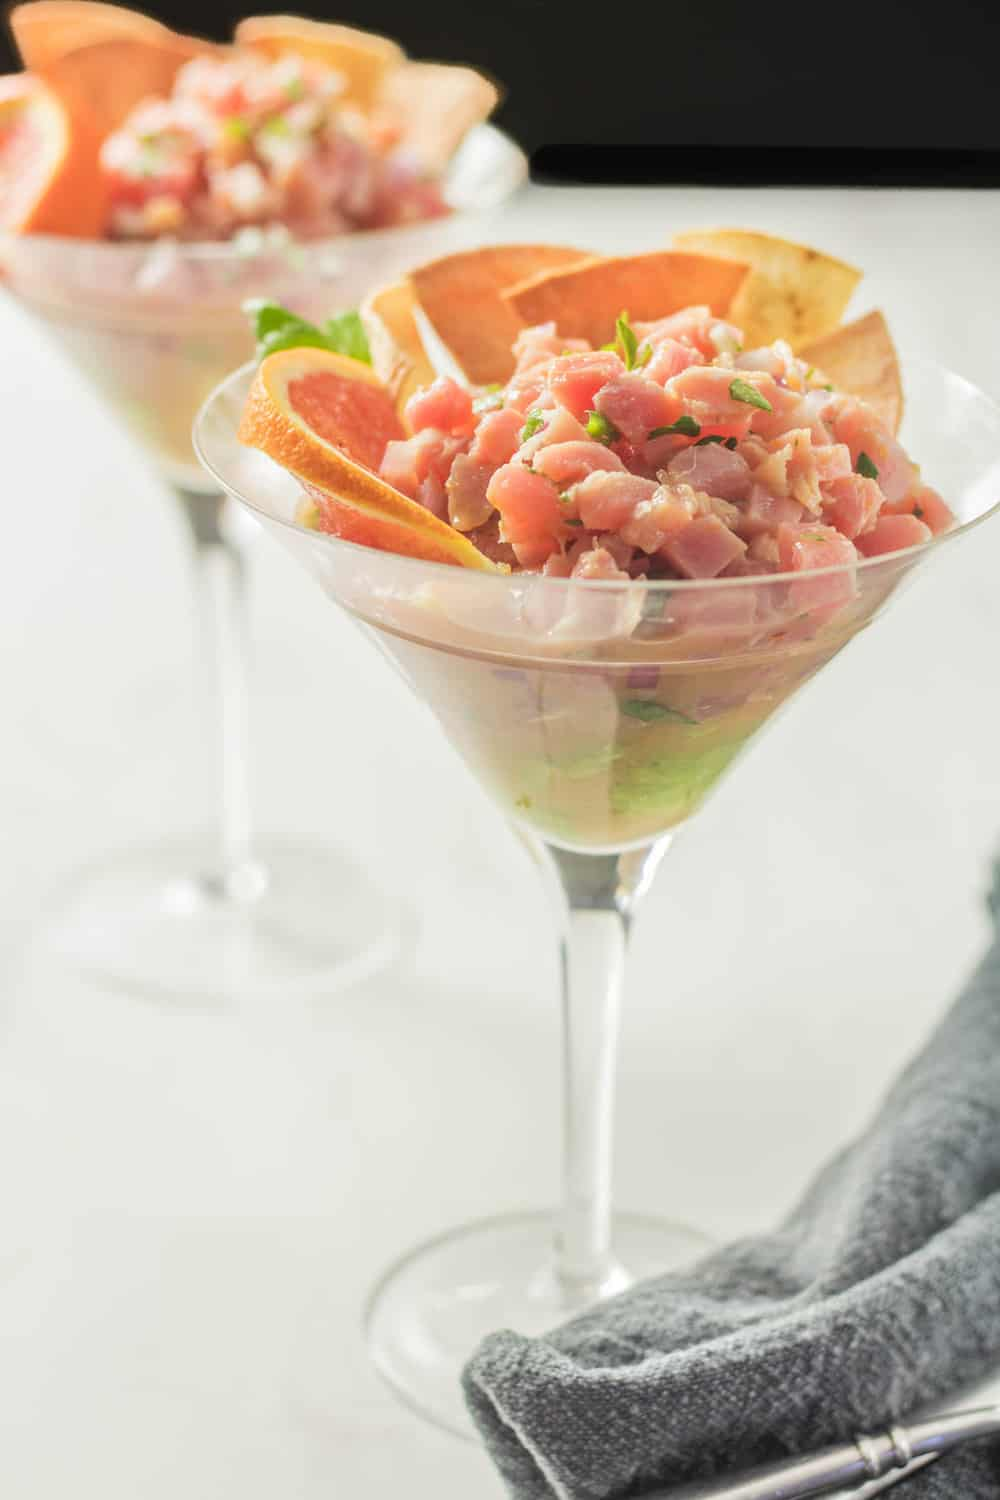 2 martini glasses filled with Latin Tuna Tartare and avocado garnished with cara cara oranges and air fryer corn tortilla chips.